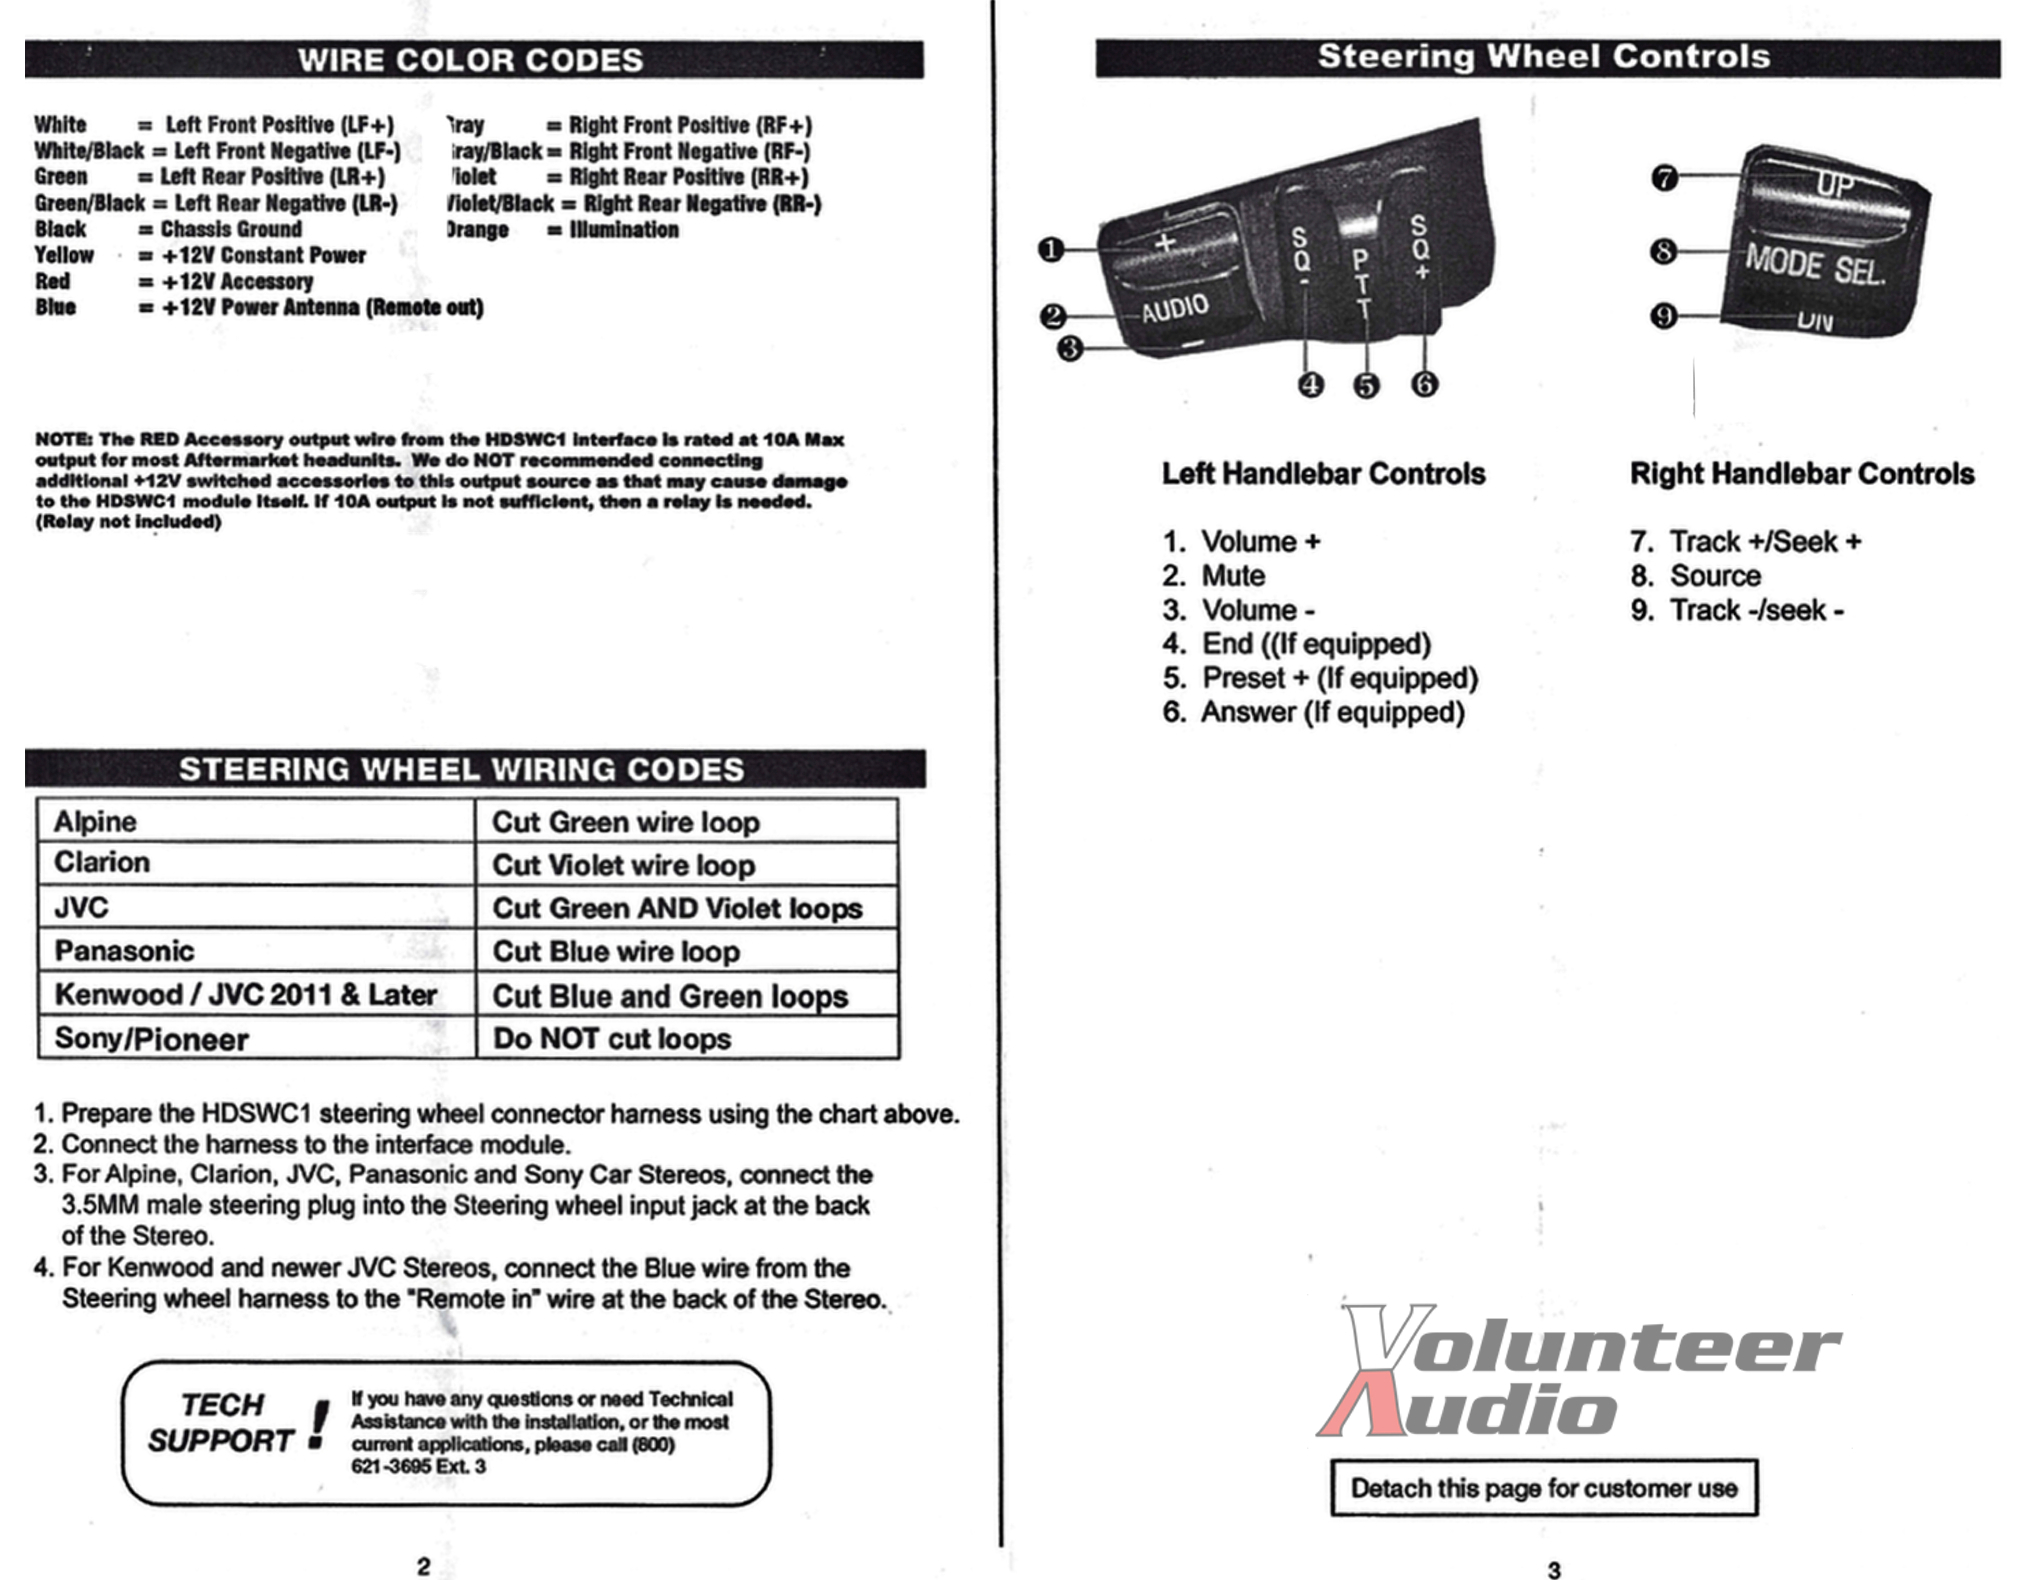 inst1 sony marine stereo wiring diagram dolgular com scosche loc2sl wiring diagram at mifinder.co